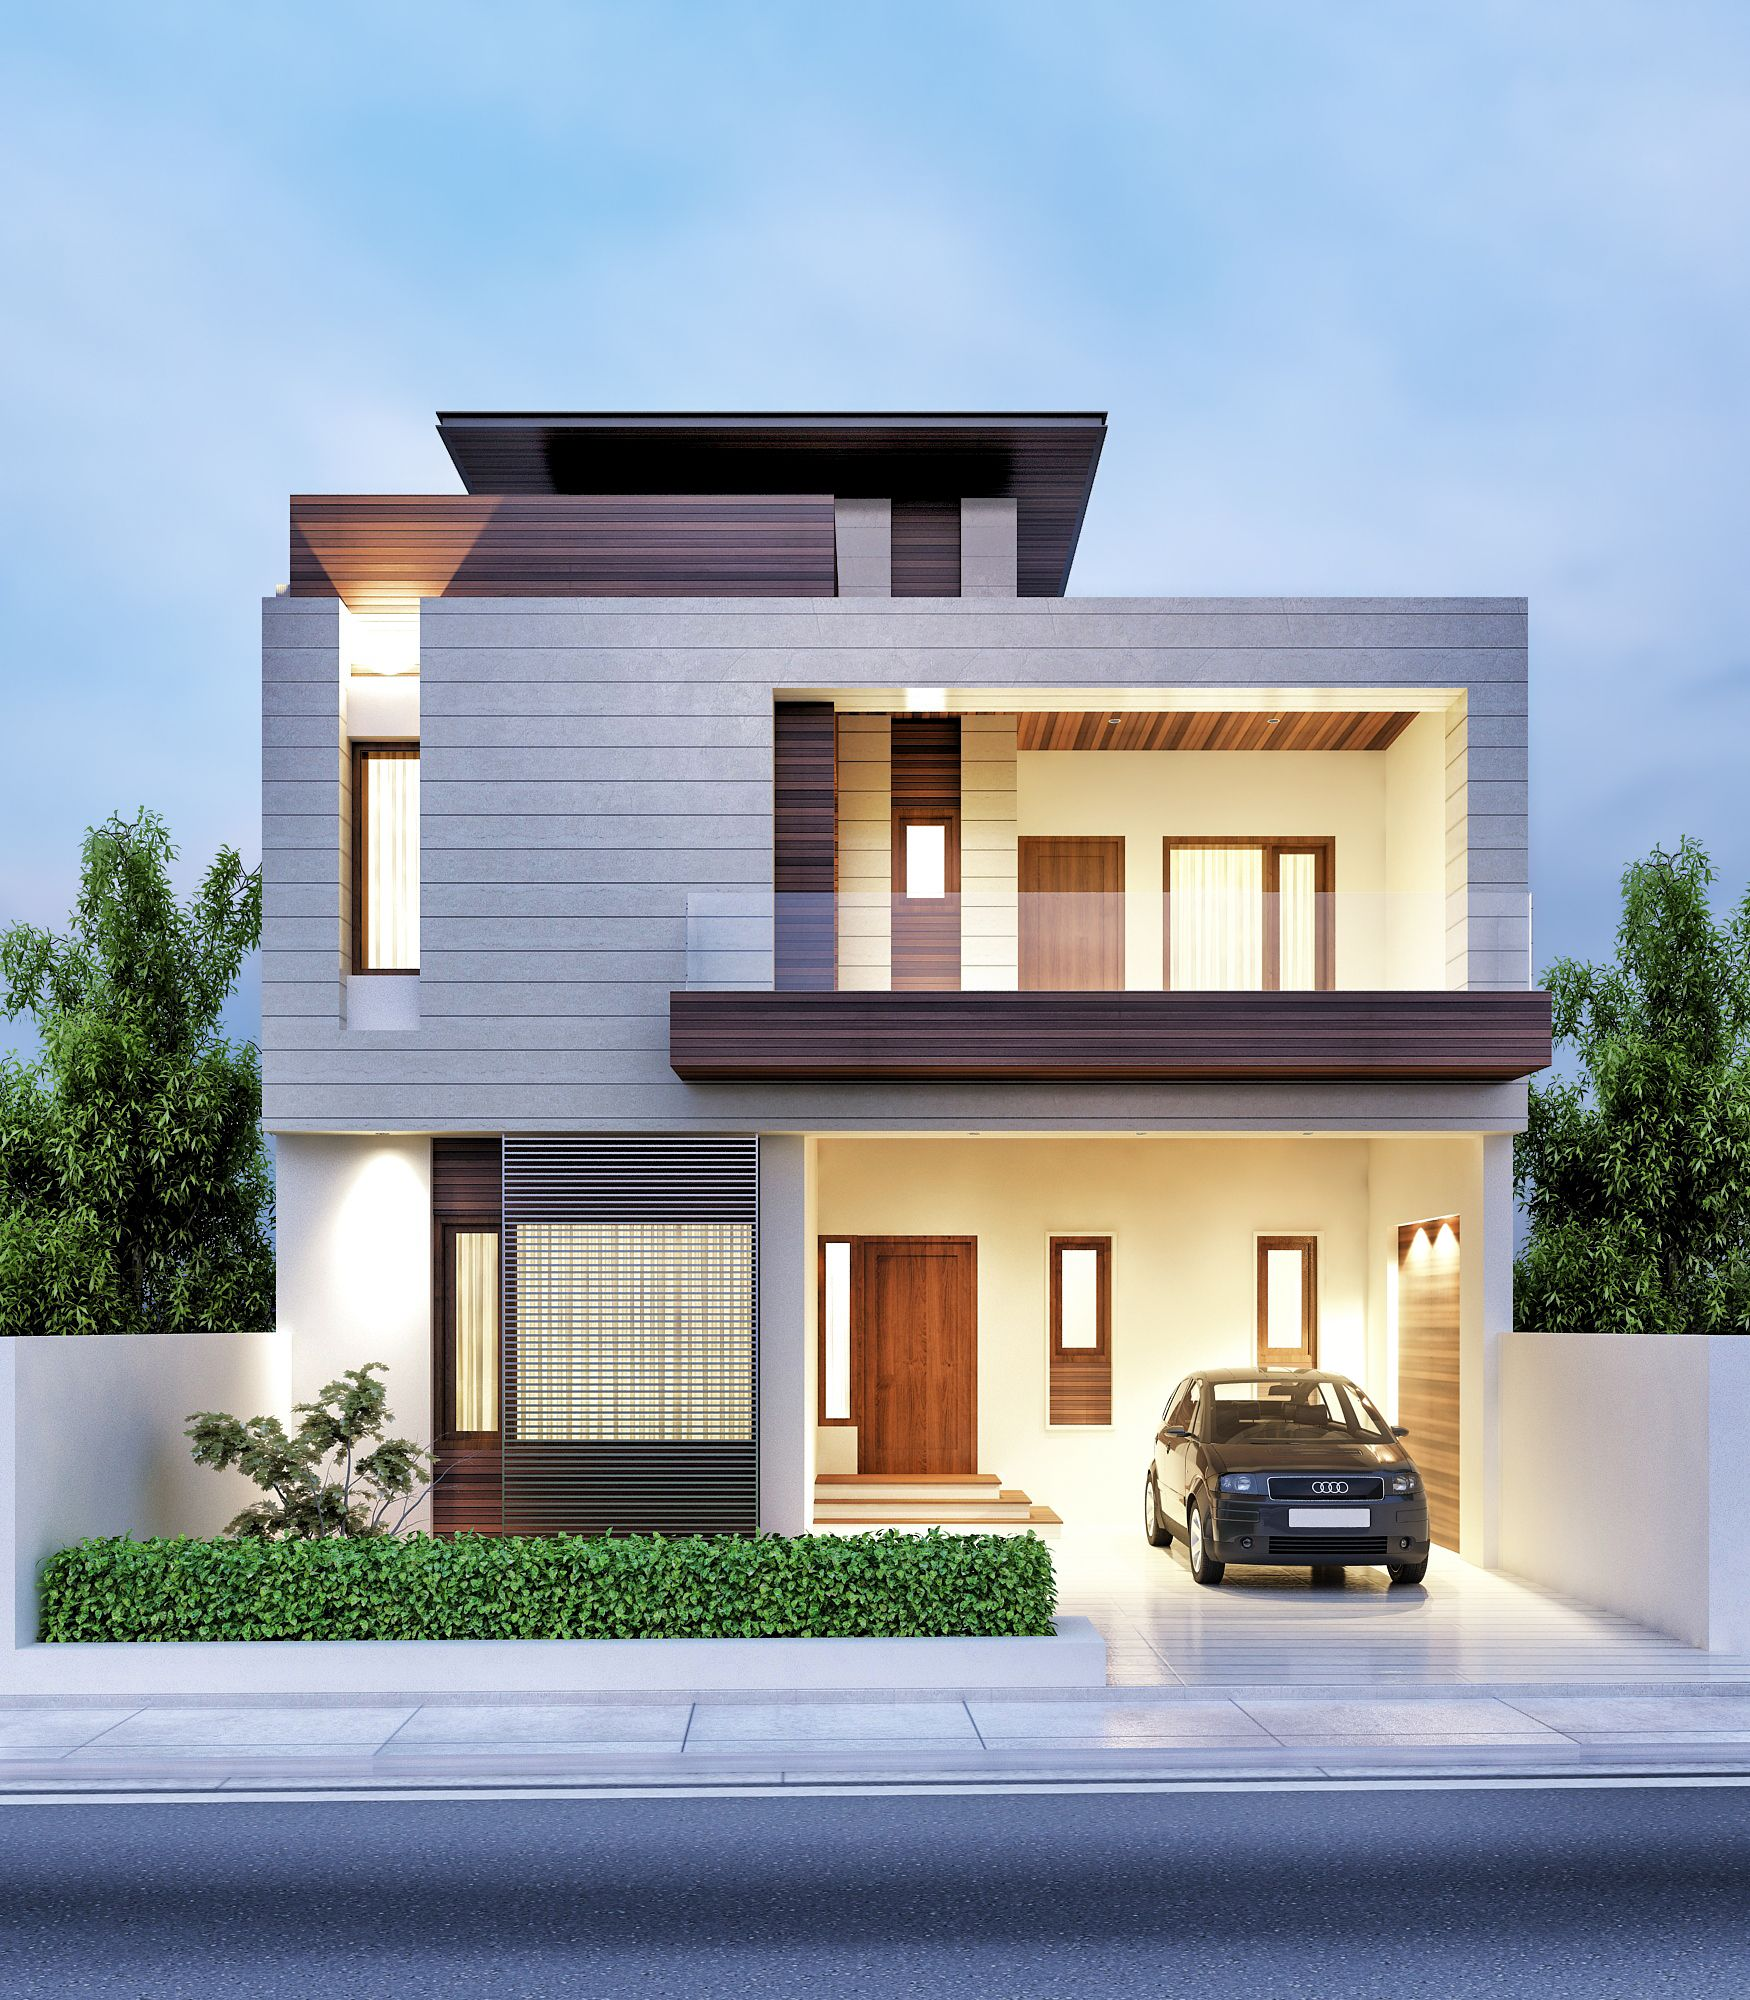 Simple modern house exterior - Find This Pin And More On Cool Homes Simple Modern Home